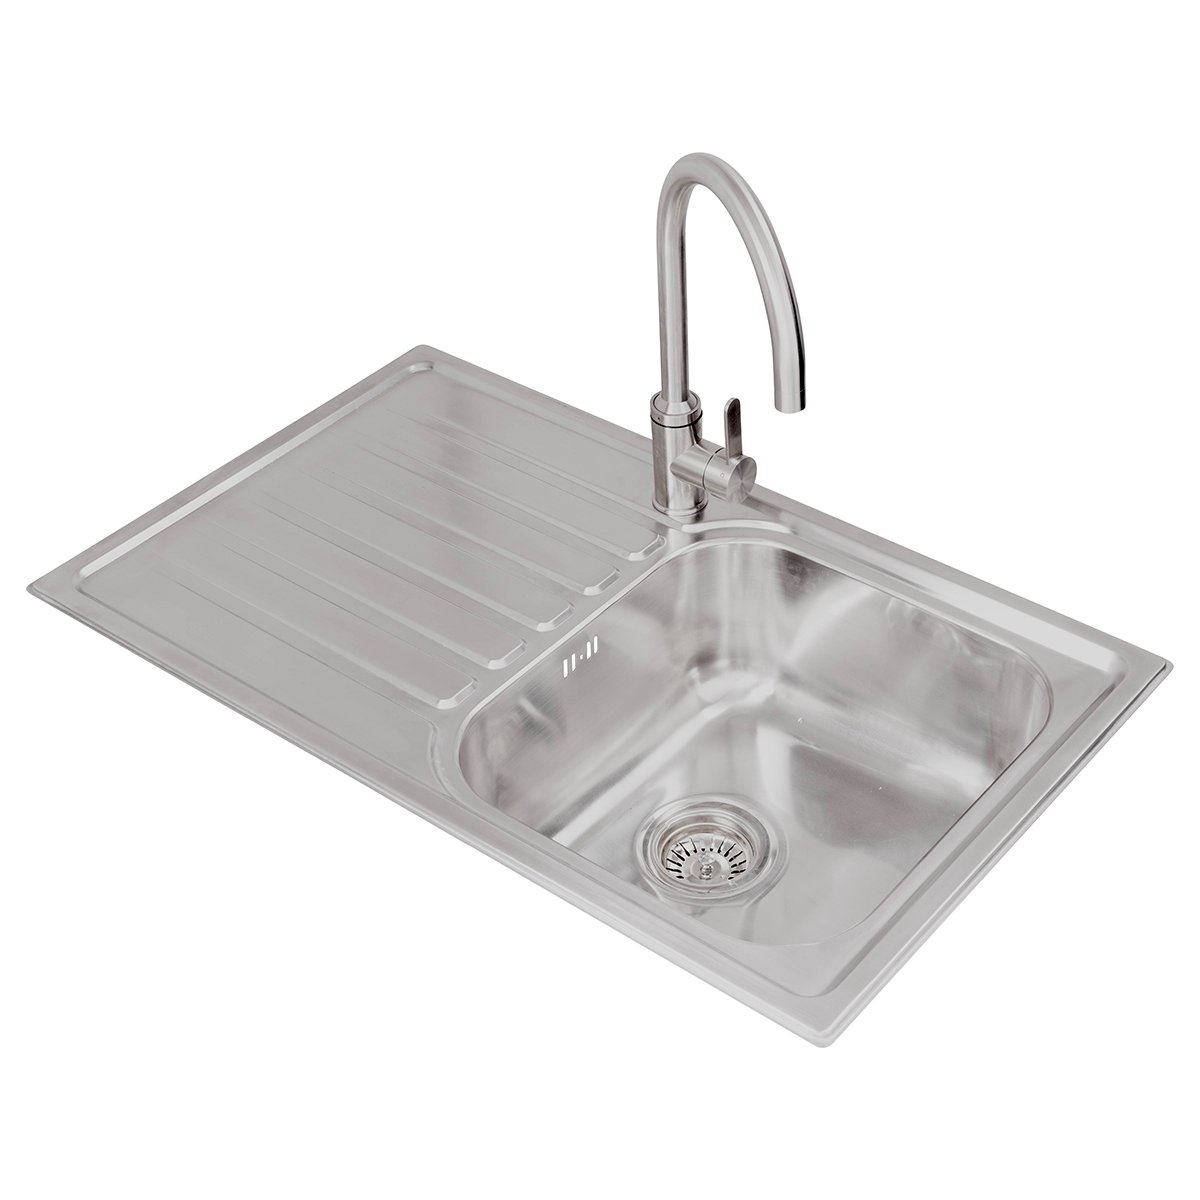 Valle Victoria 635x505mm 1.5 Bowl Spacesaver Kitchen Sink ...